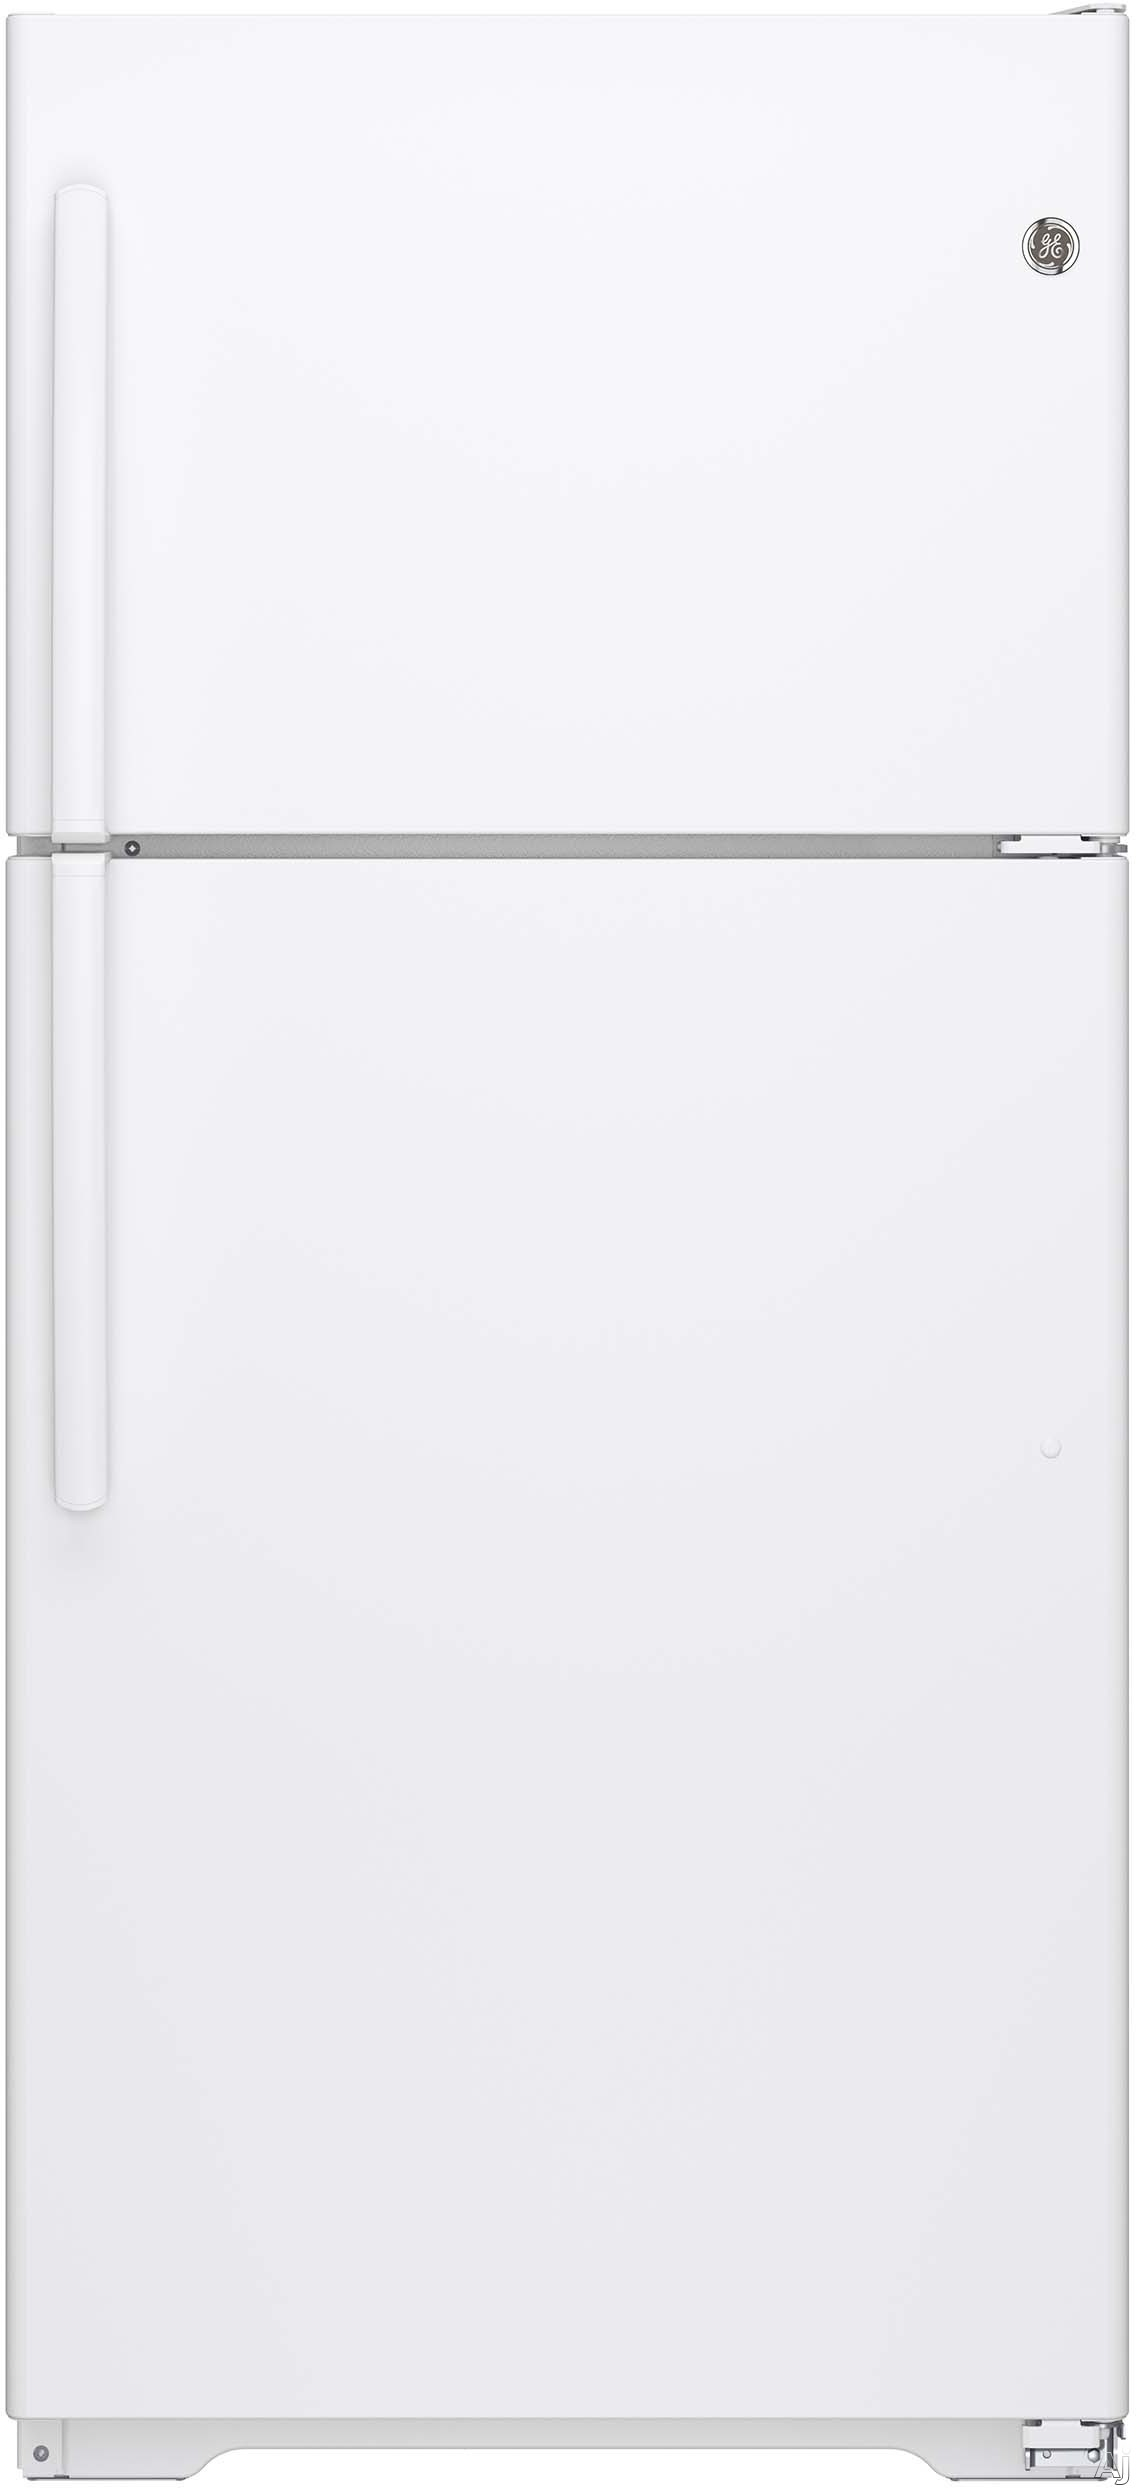 GE GTE18ITHWW 30 Inch Top-Freezer Refrigerator with